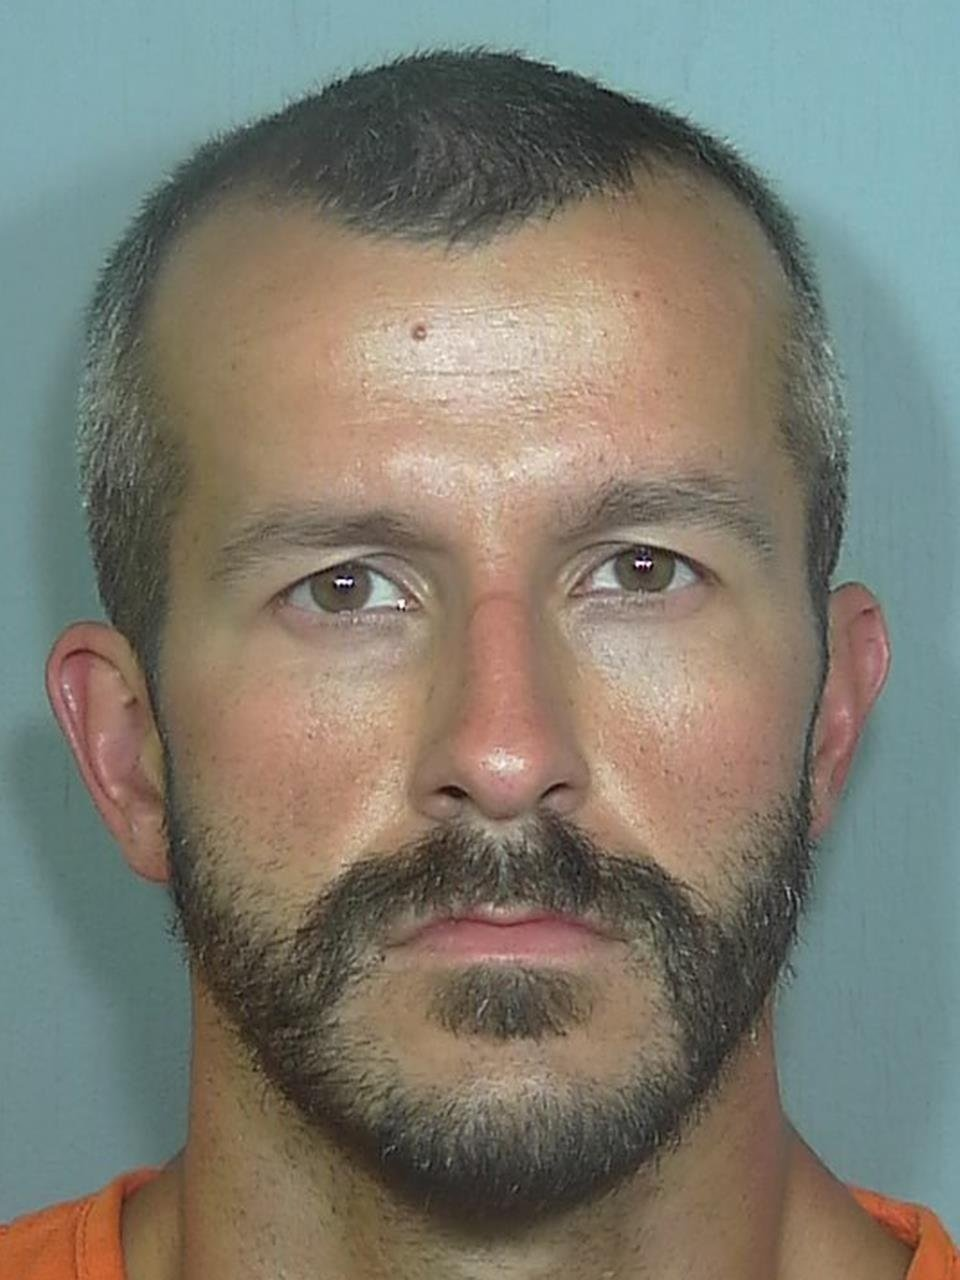 Chris Watts, 33, was arrested on suspicion of three counts of first-degree murder and three counts of tampering with a human body, police said.